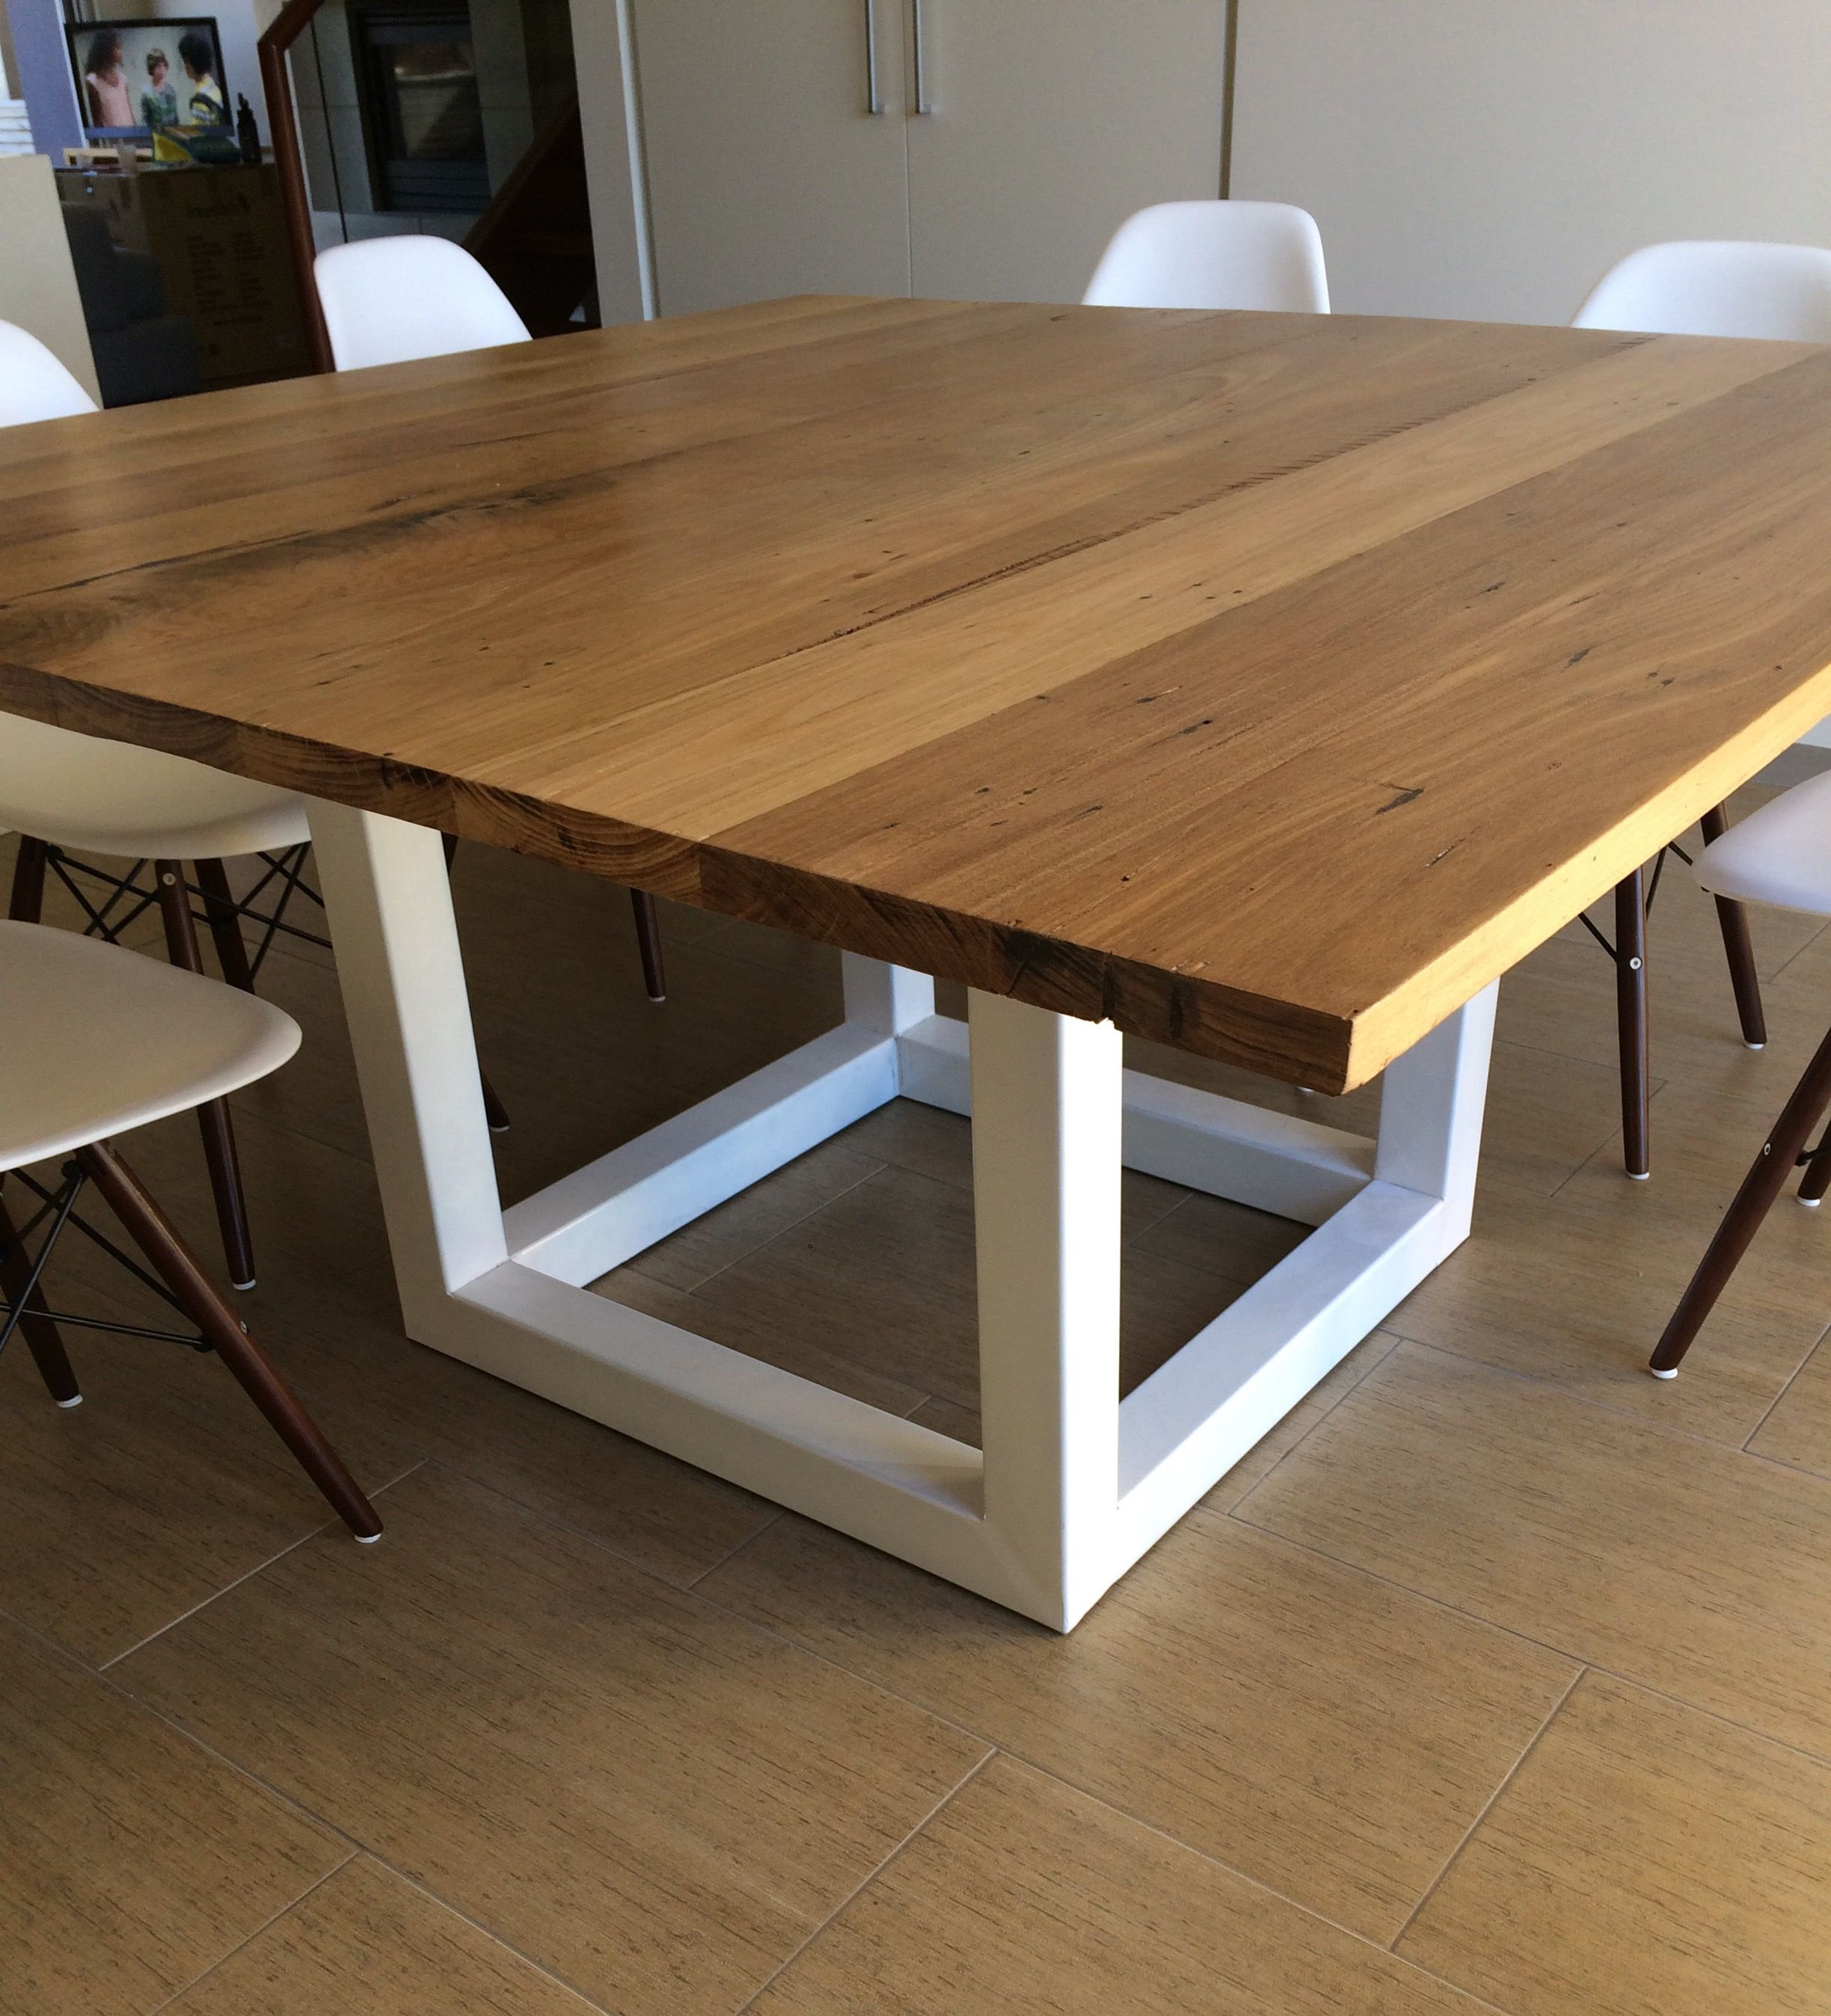 Recycled Messmate Timber Square Dining Table With White Metal Legs Square Dining Tables Dining Table With Leaf Small Square Dining Table